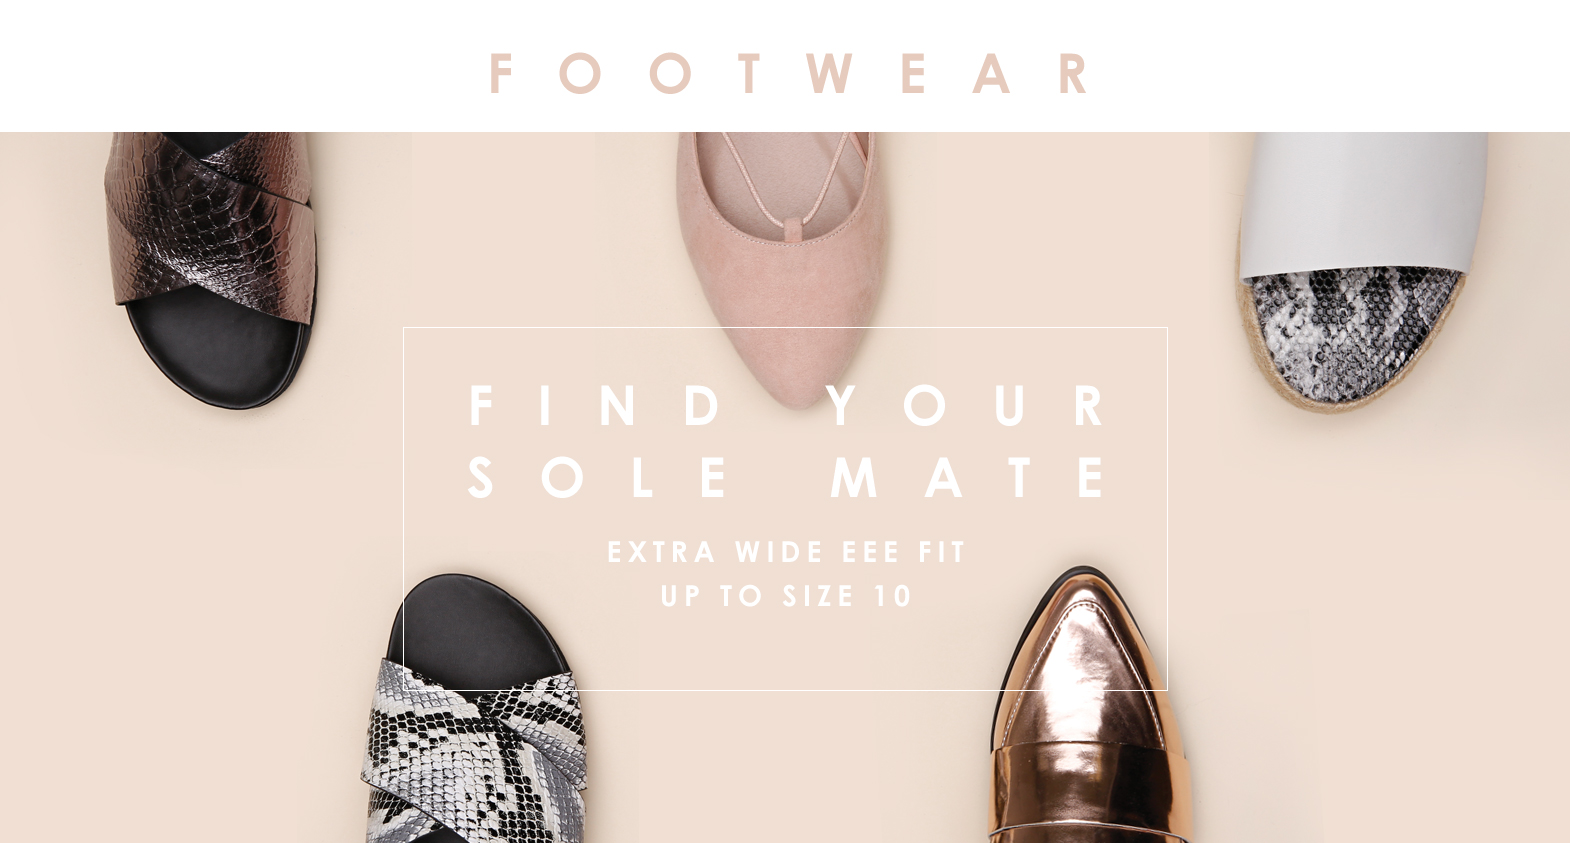 Shop Footwear Up To Size 10, Extra Wide EEE Fit >